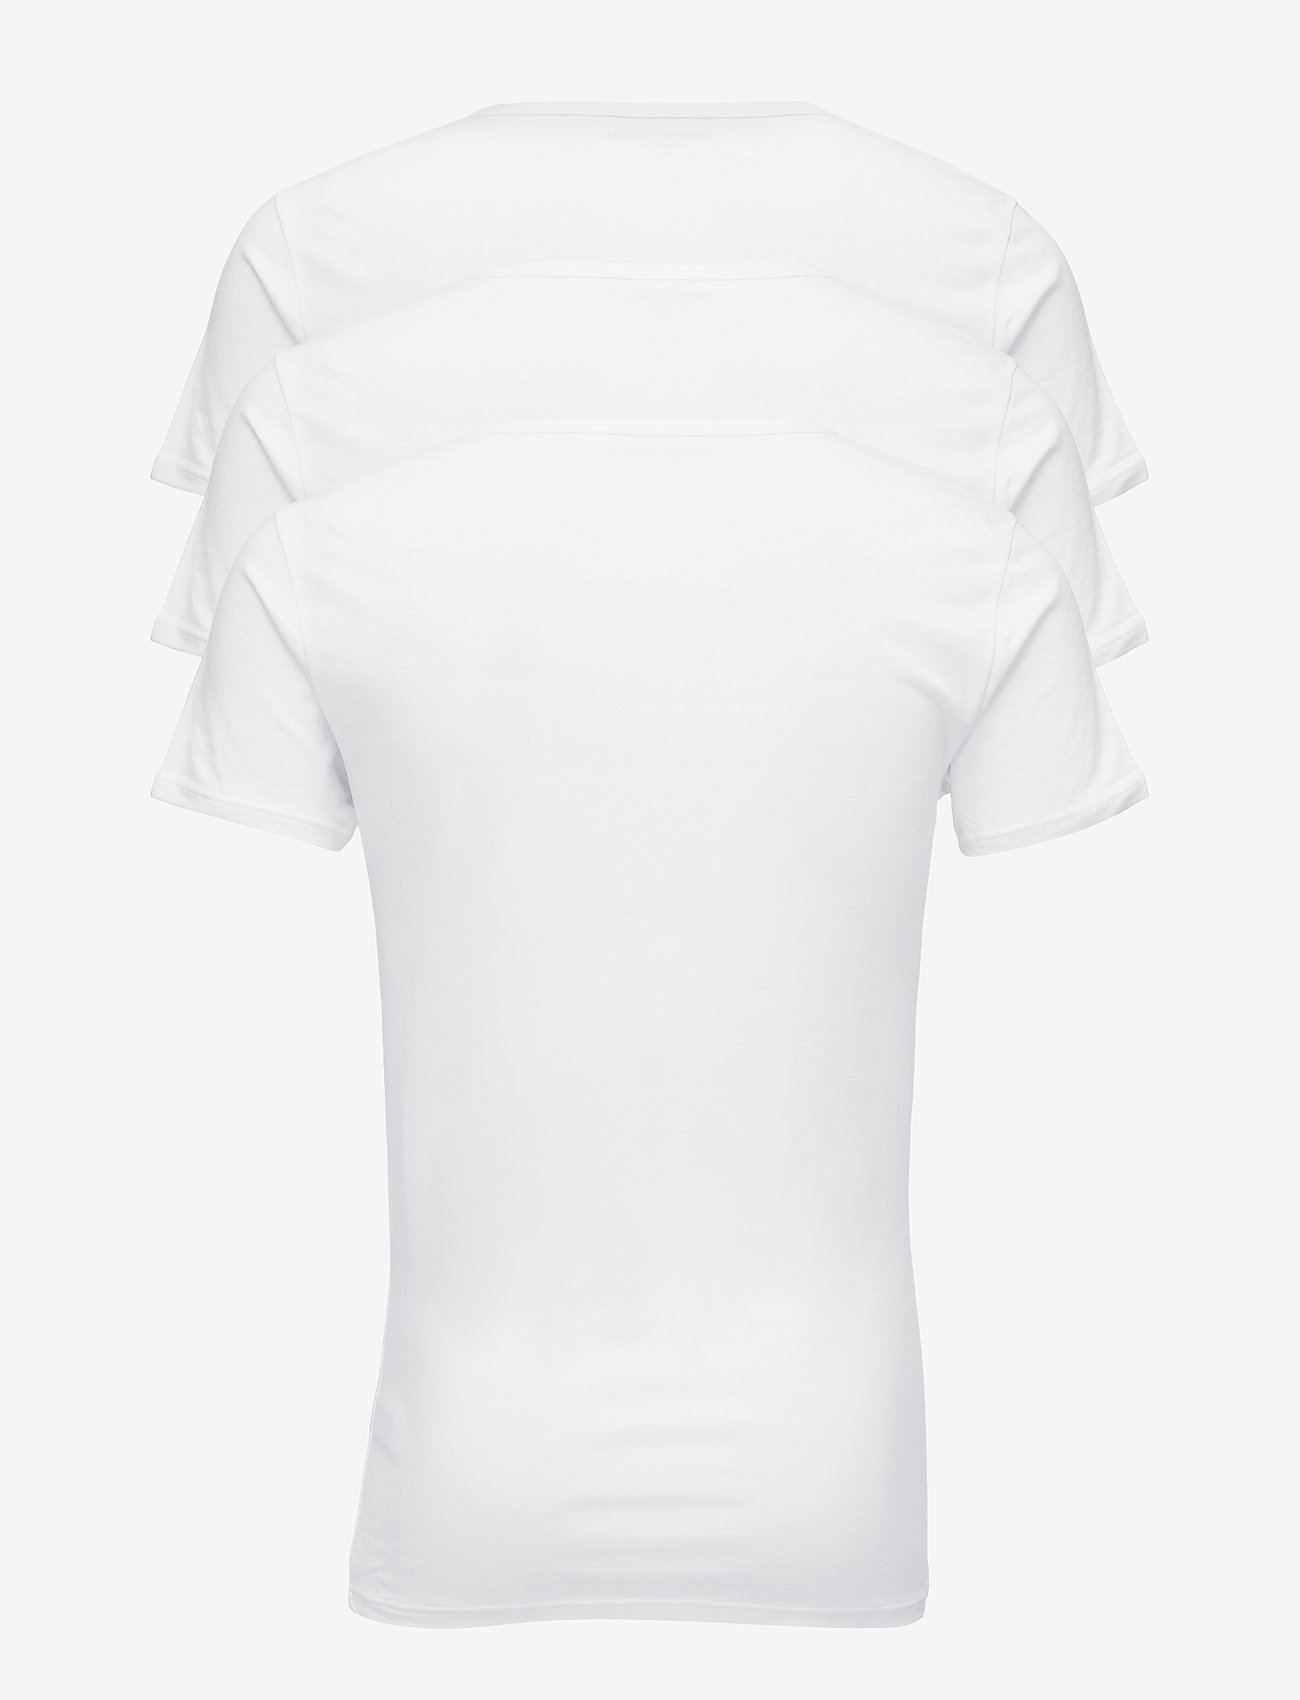 Tommy Hilfiger - STRETCH CN TEE SS 3PACK - multipack - white - 1